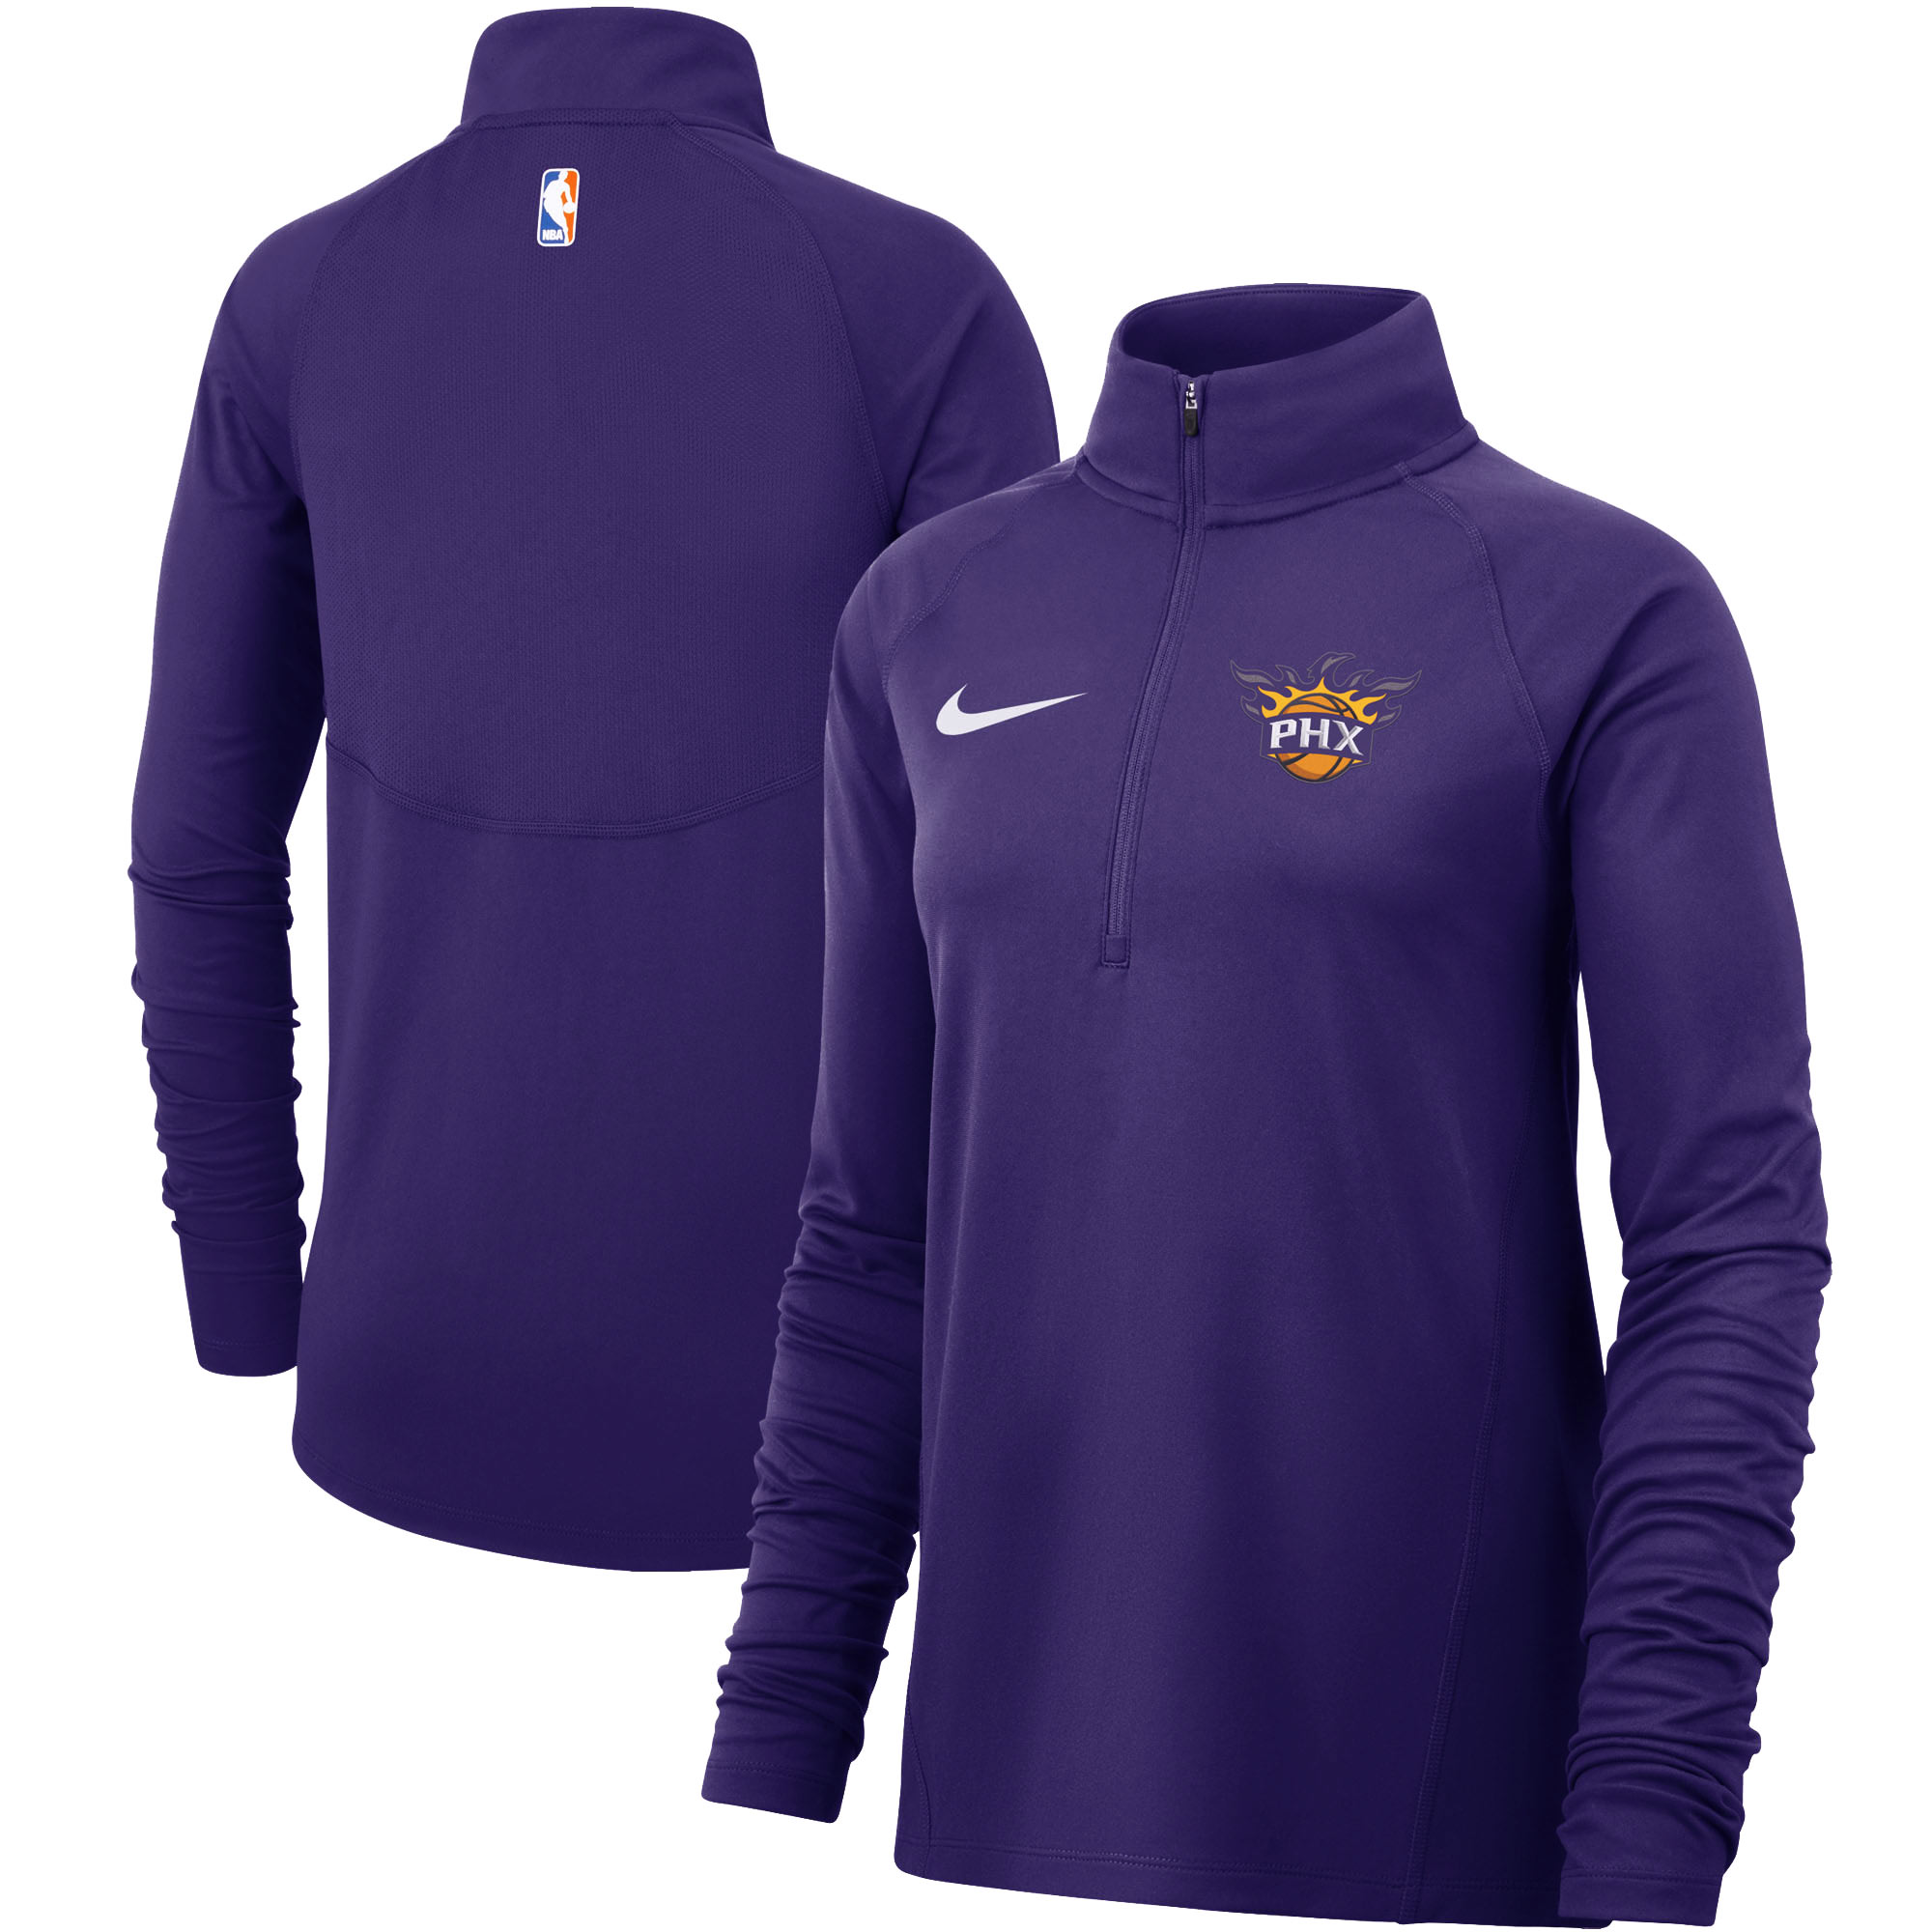 Phoenix Suns Nike Women's Element Performance Raglan Sleeve Half-Zip Pullover Jacket - Purple